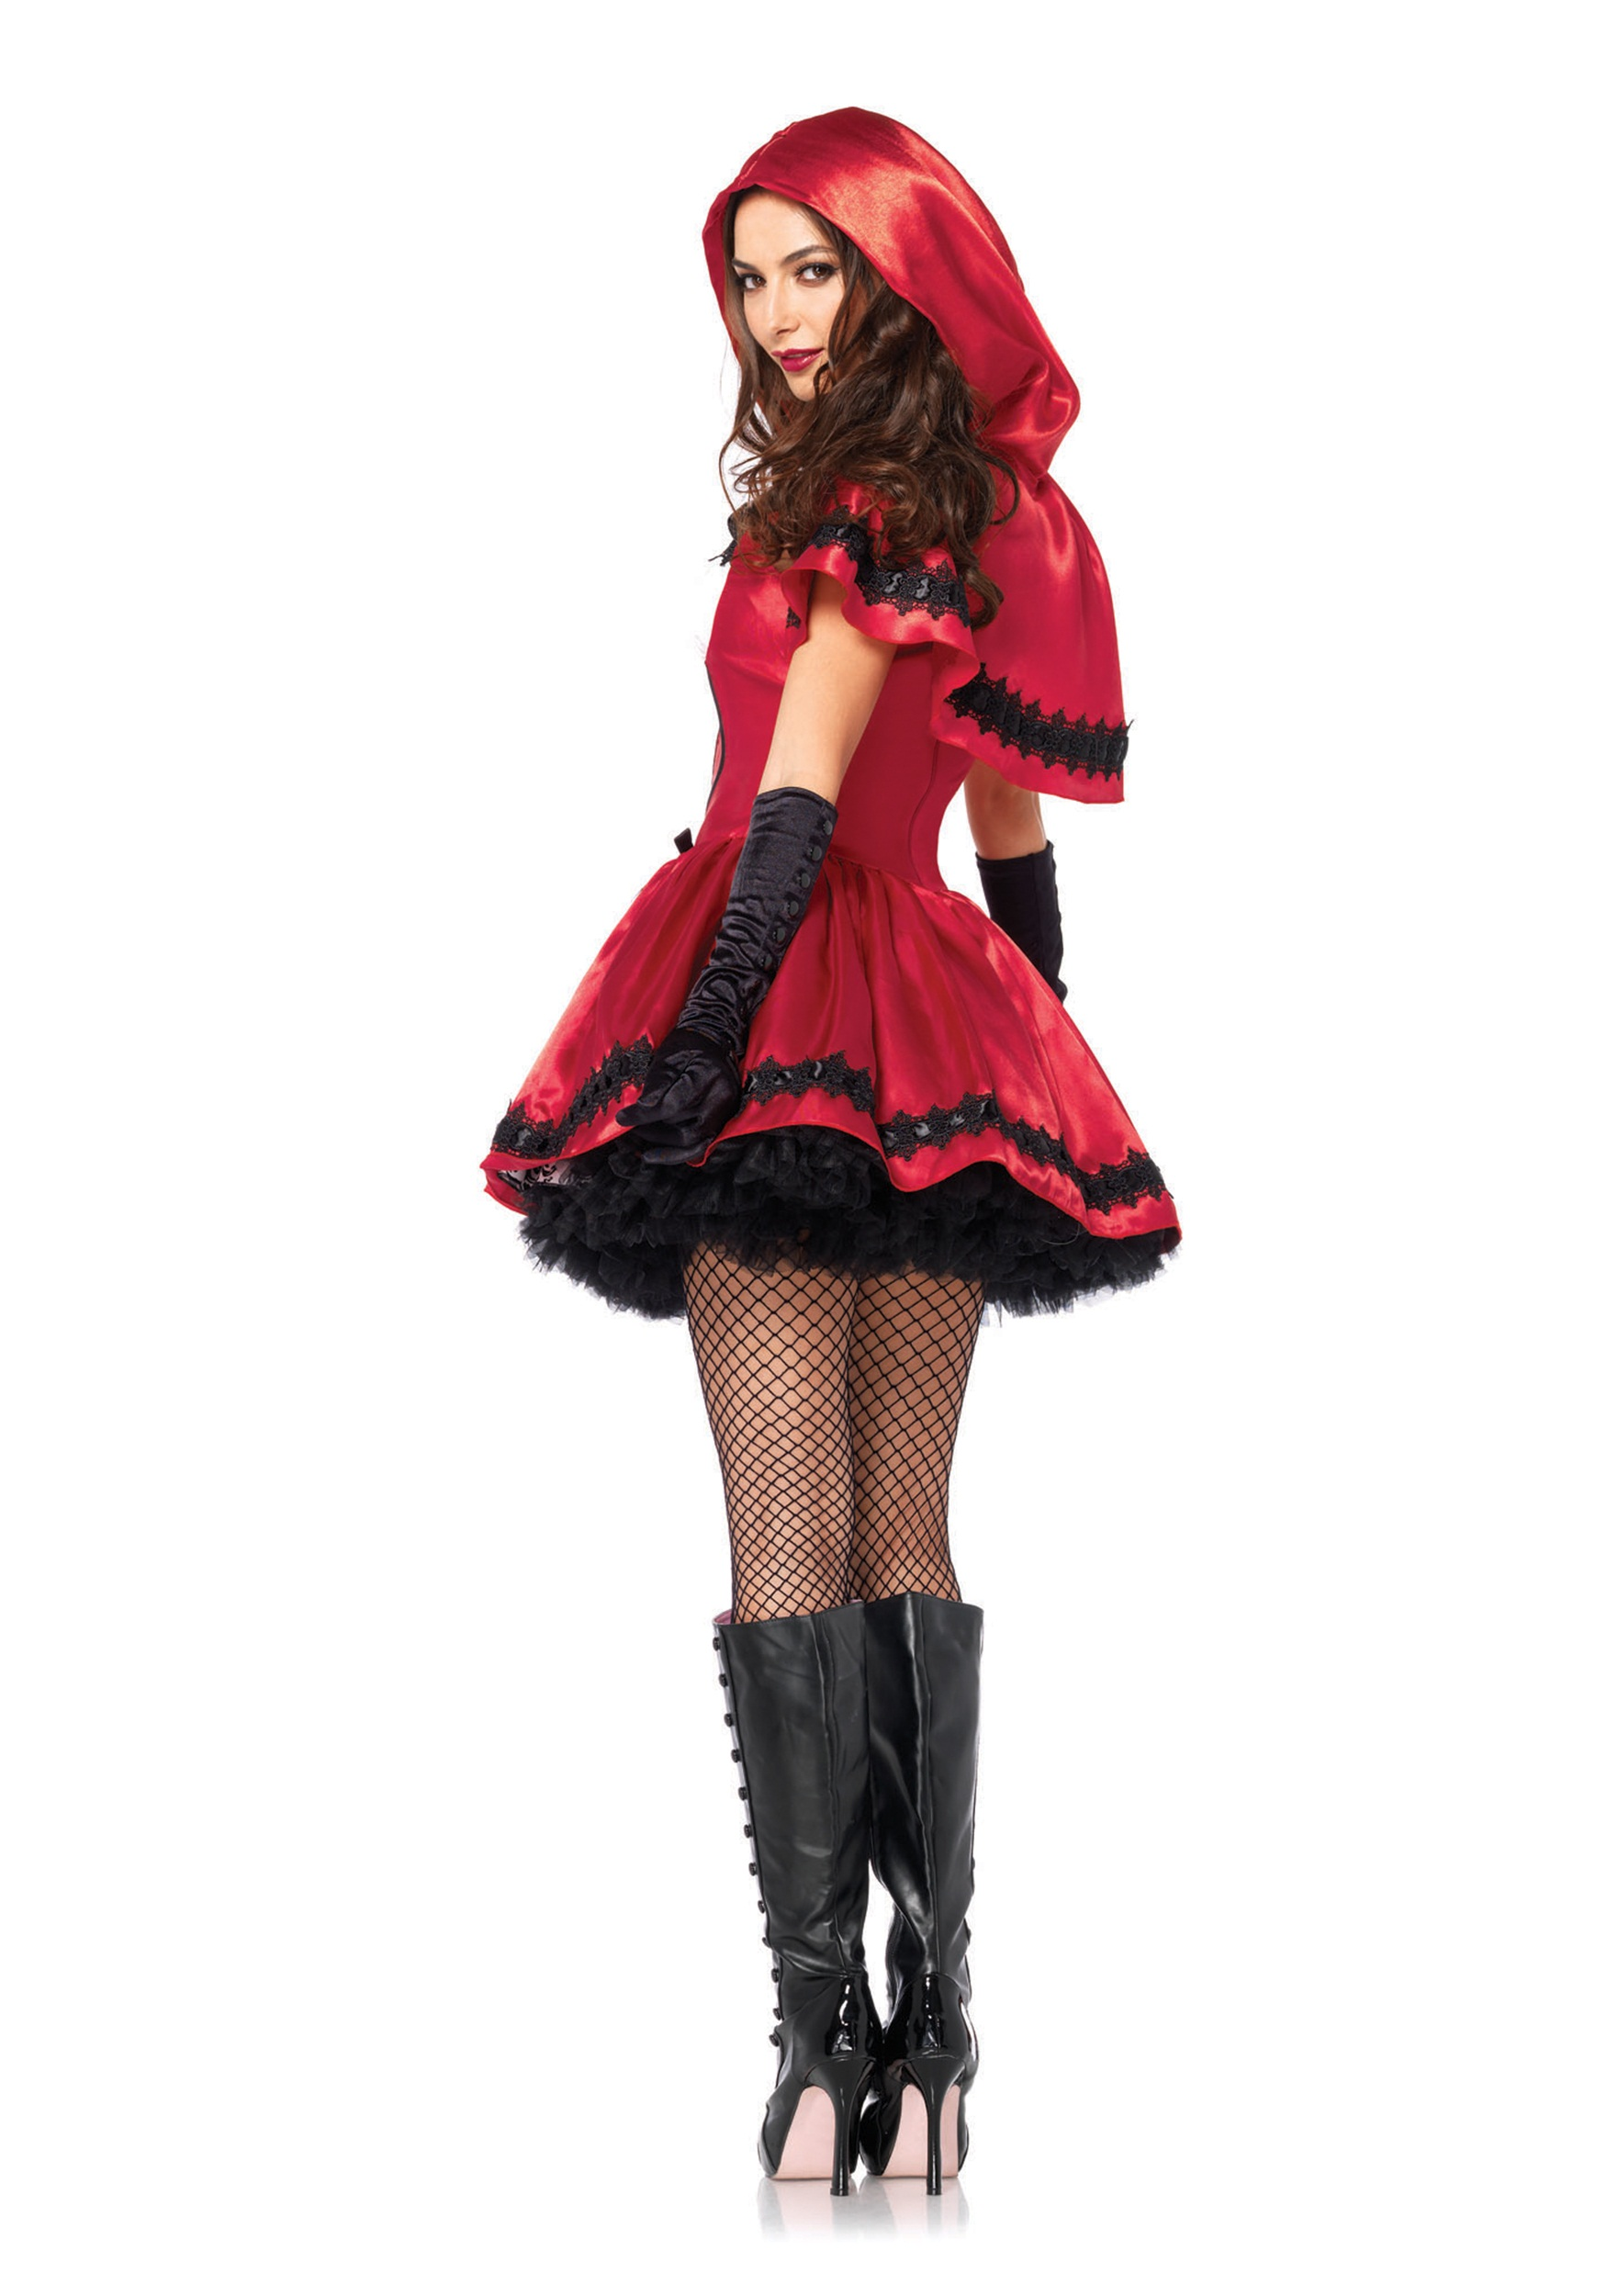 ... Gothic Red Riding Hood Adult Costume alt  sc 1 st  Halloween Costumes & Gothic Red Riding Hood Adult Costume